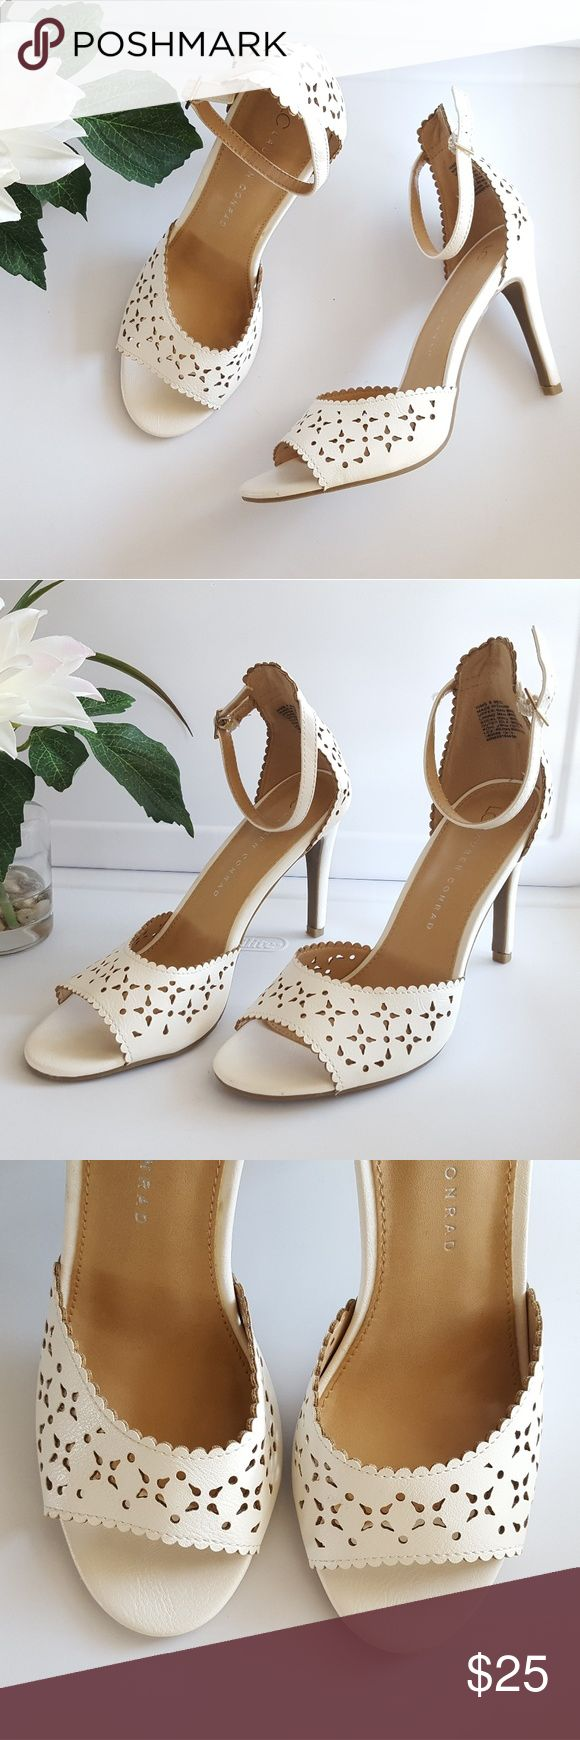 LC Lauren Conrad Steamer Floral Cut-Out Heels EUC! Fun and flirty! LC Lauren Conrad Shoes Heels